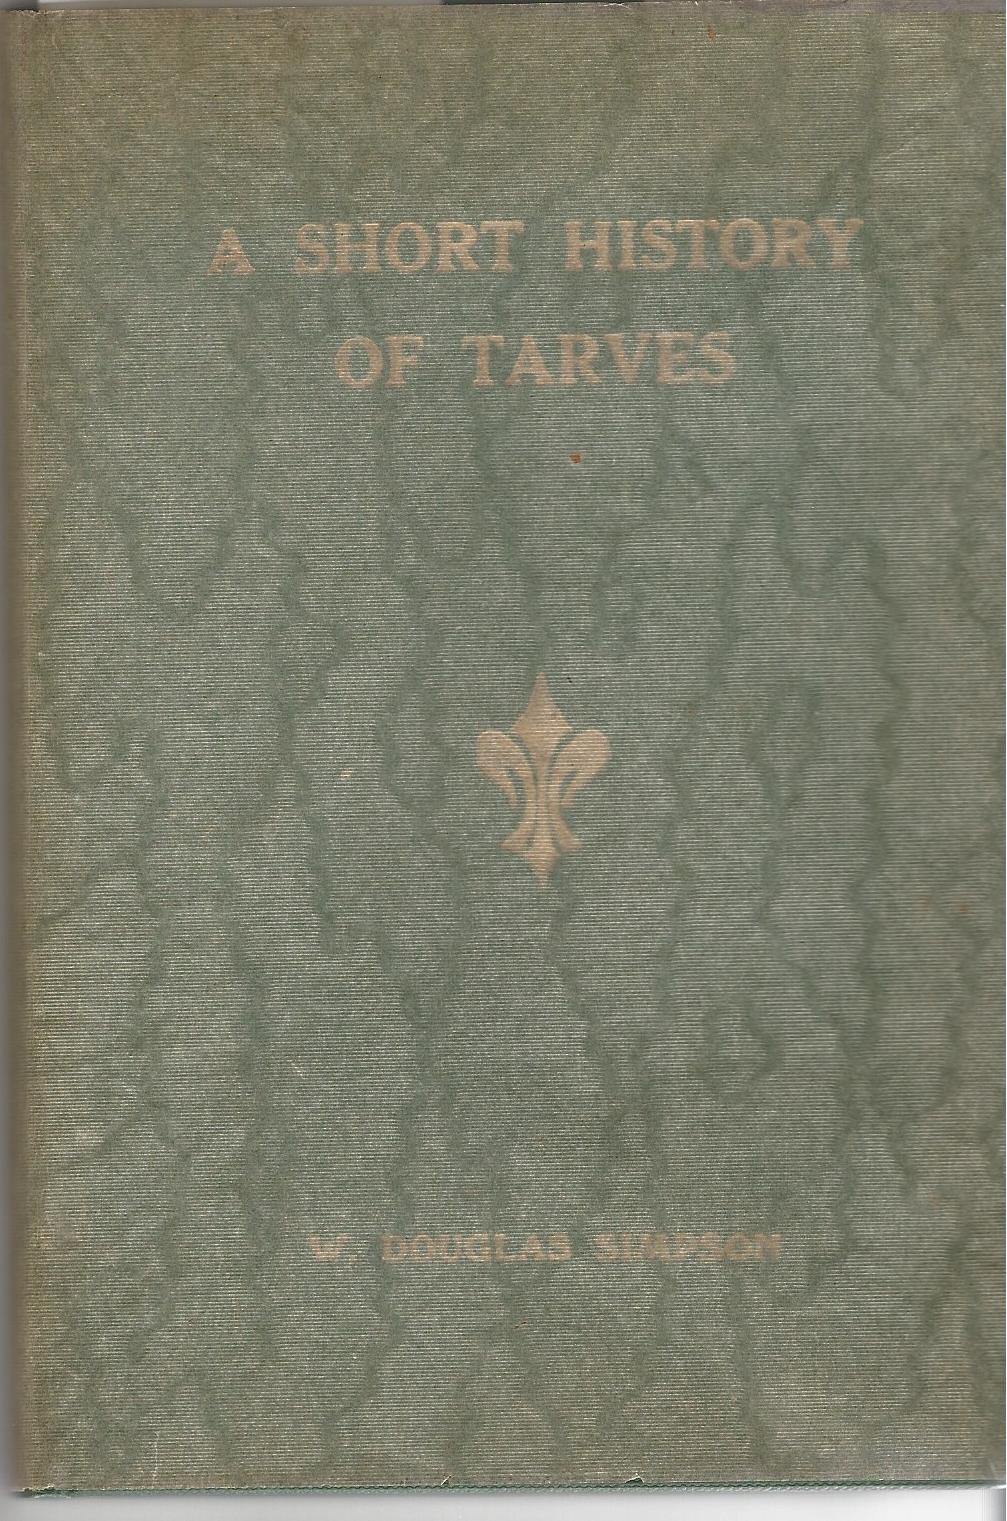 A Short History of Tarves.